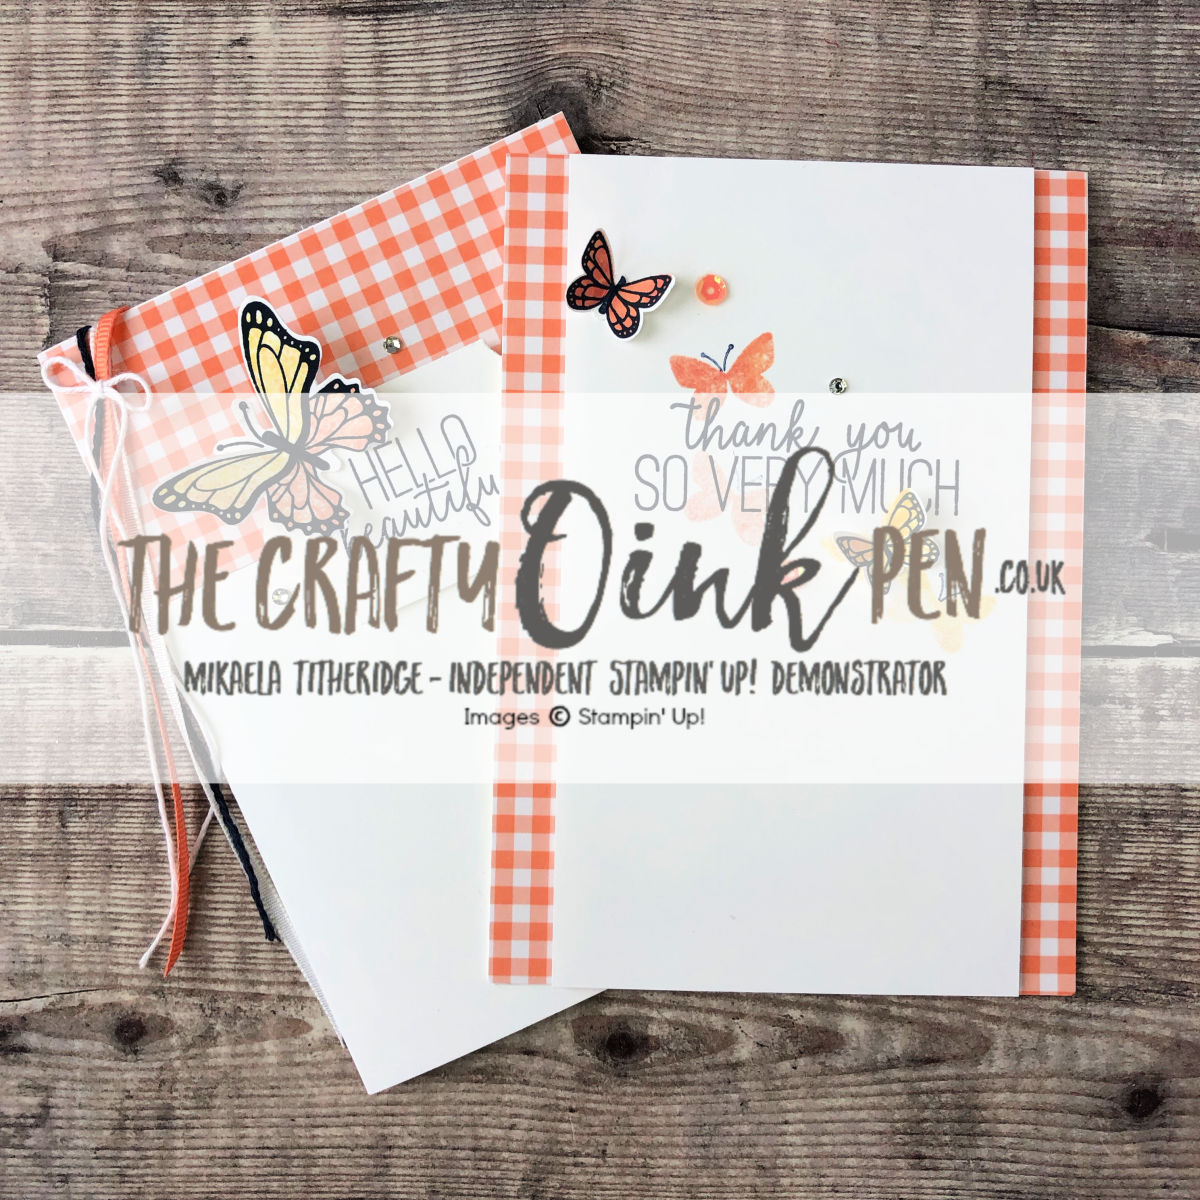 Butterfly Gala Papercraft Class by Mikaela Titheridge, UK Independent Stampin' Up! Demonstrator, The Crafty oINK Pen. Supplies available through my online store 24/7